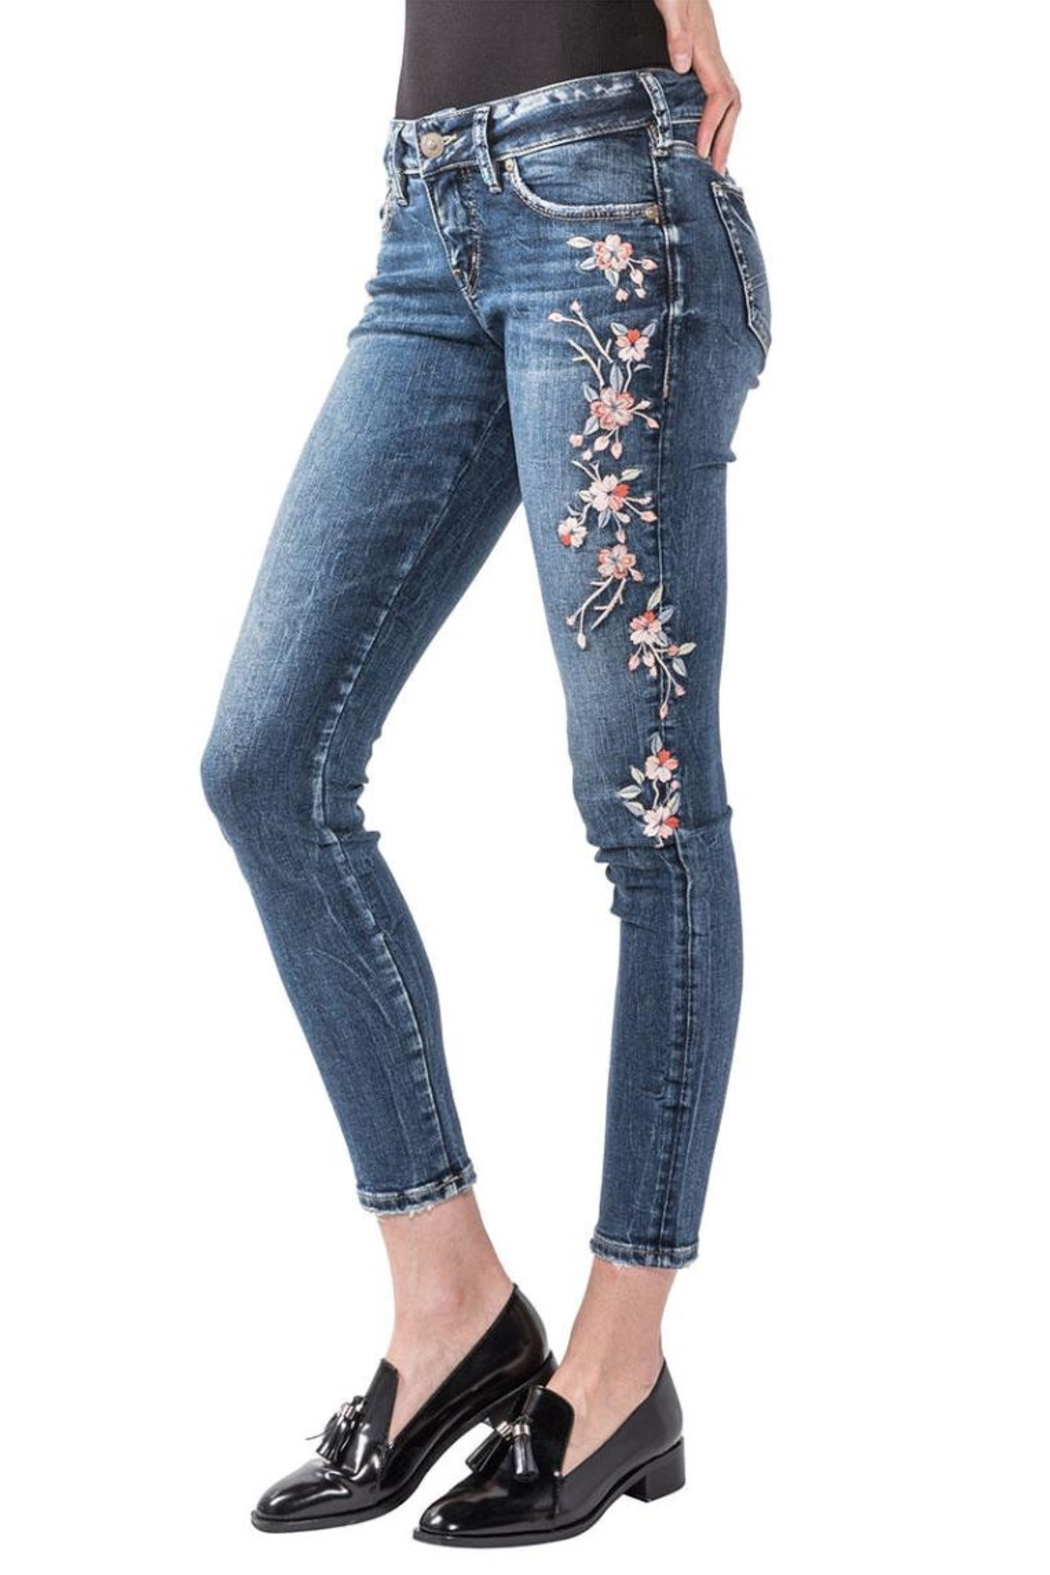 Silver Jeans Co. Elyse Embroidery Skinny - Main Image